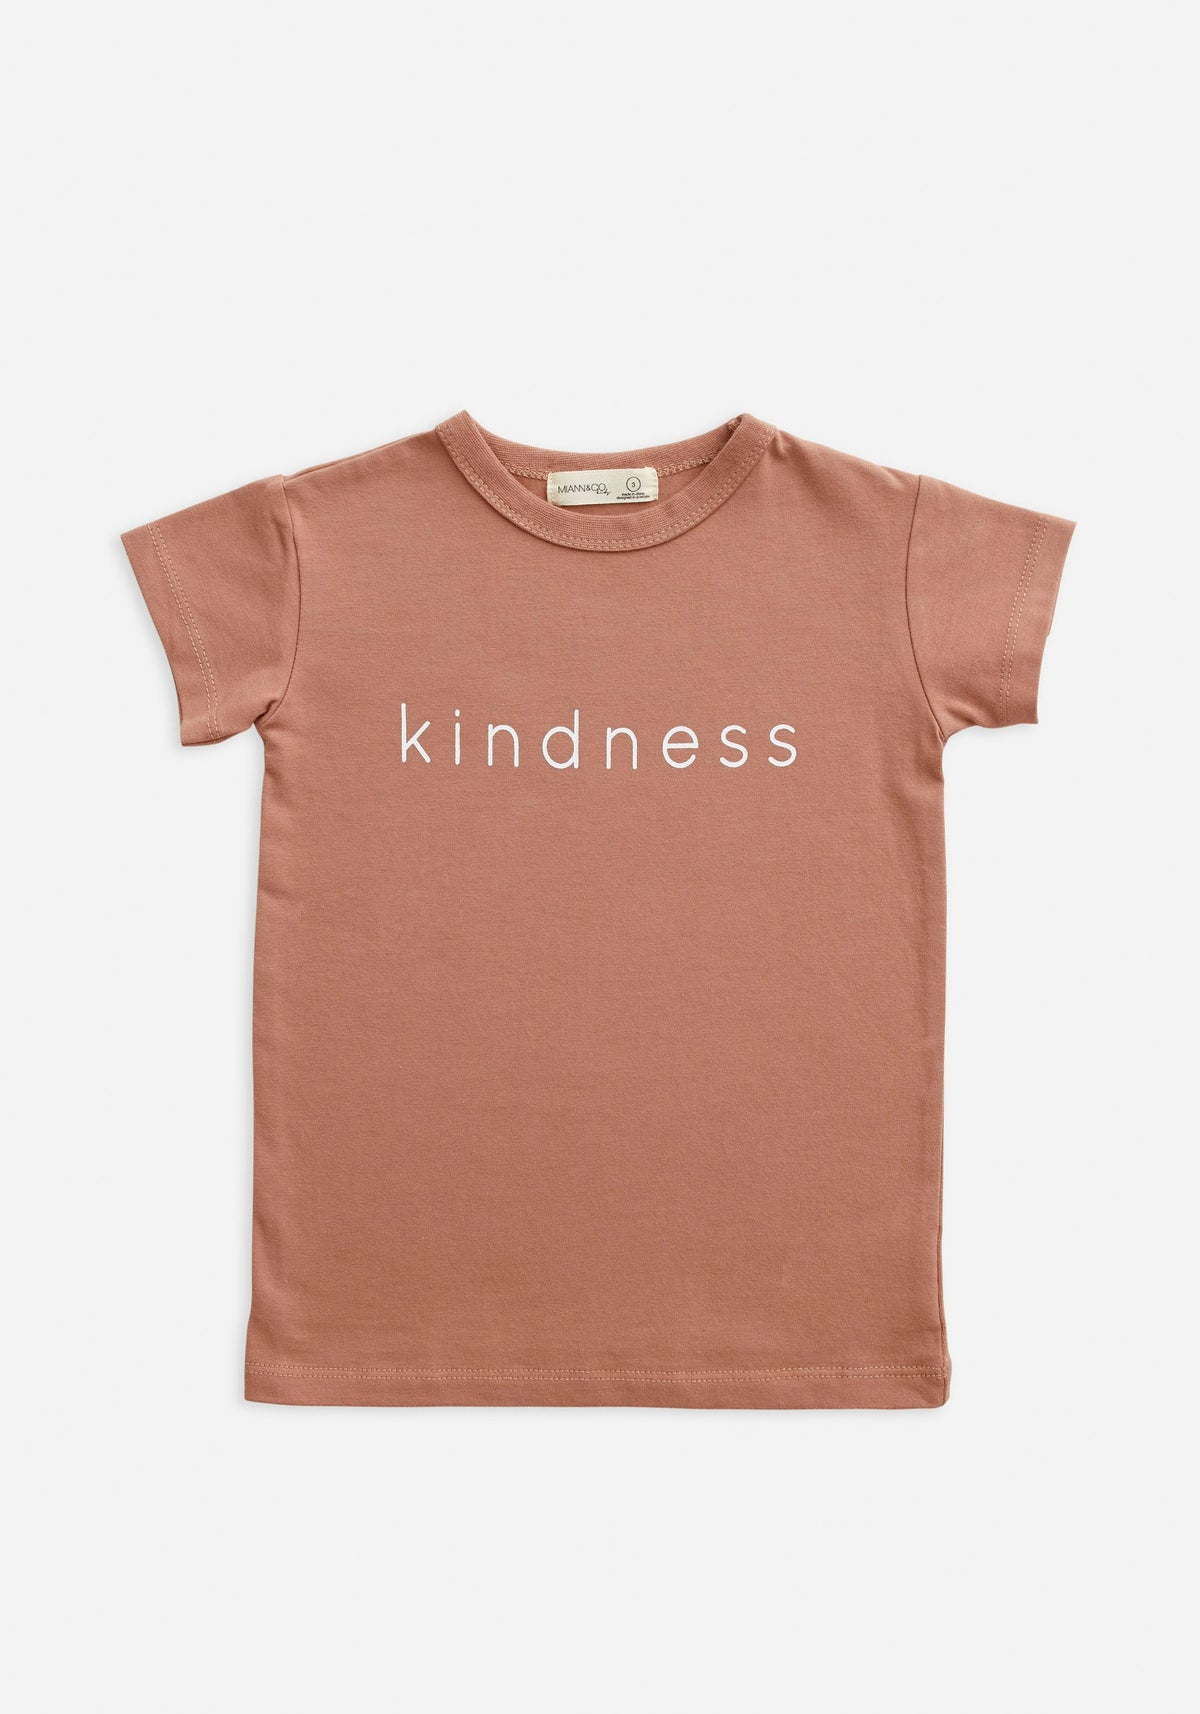 Miann & Co Kids - T-Shirt - Kindness